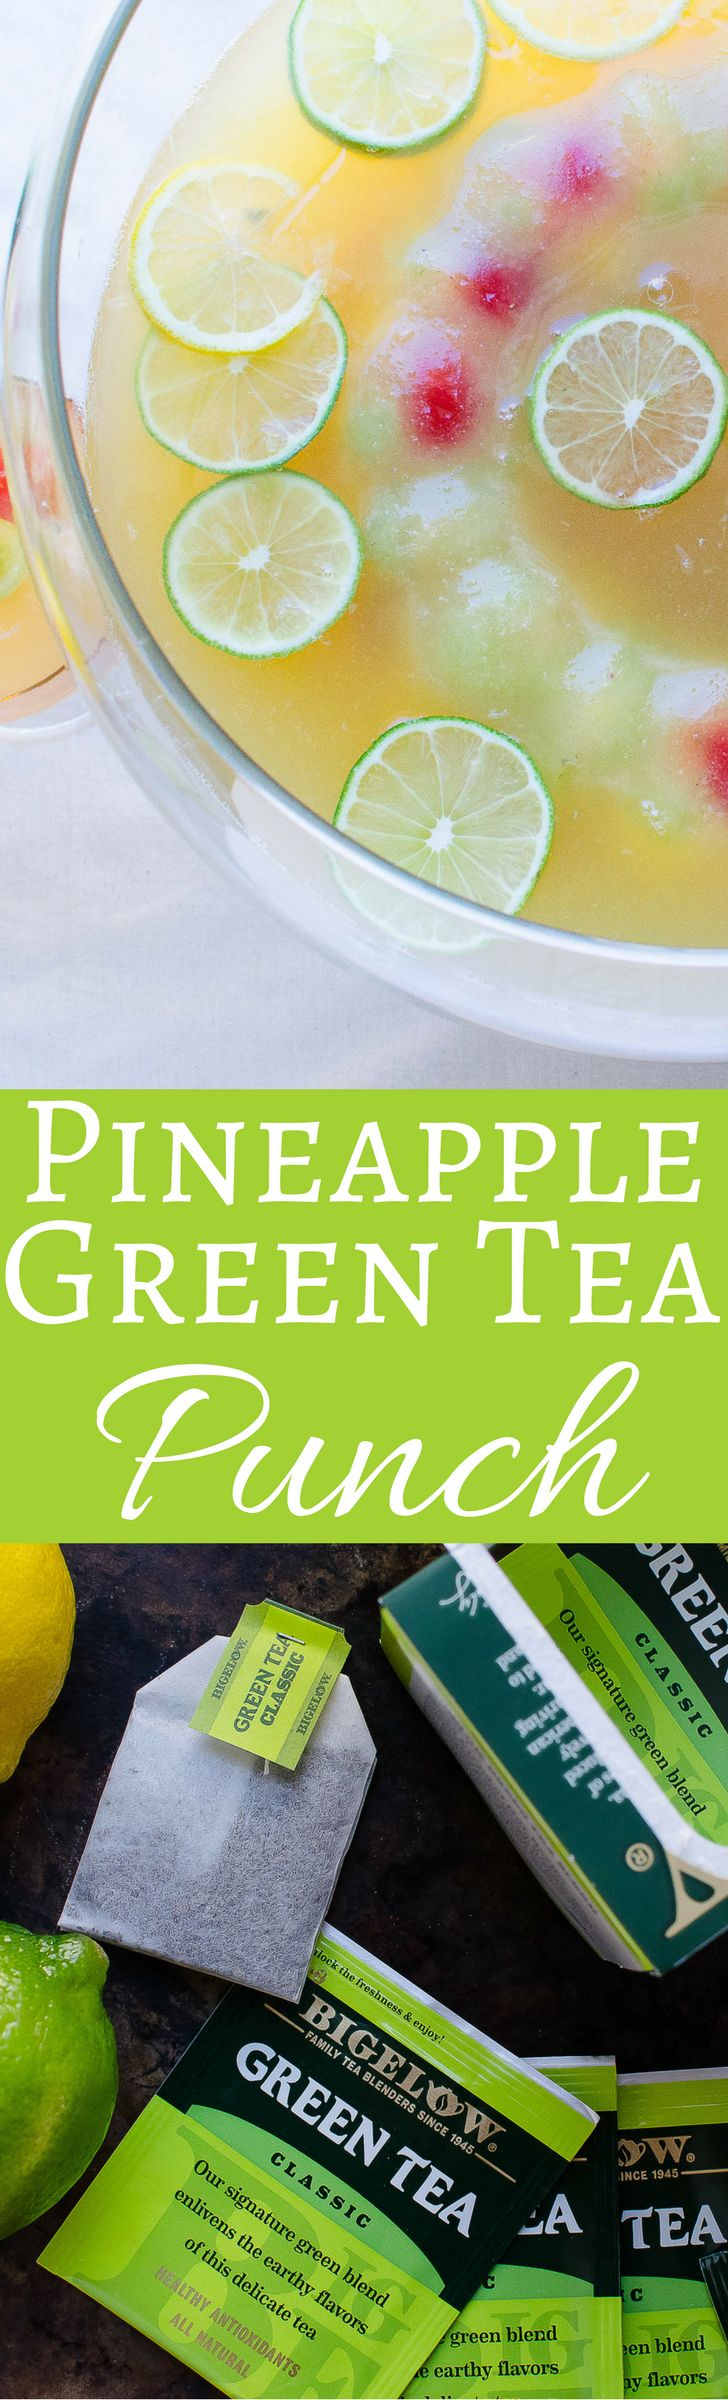 This recipe for bright, citrusy pineapple green tea punch is a terrific non-alcoholic option for your next party. Serves a crowd! #collectivebias #teaproudly #ad